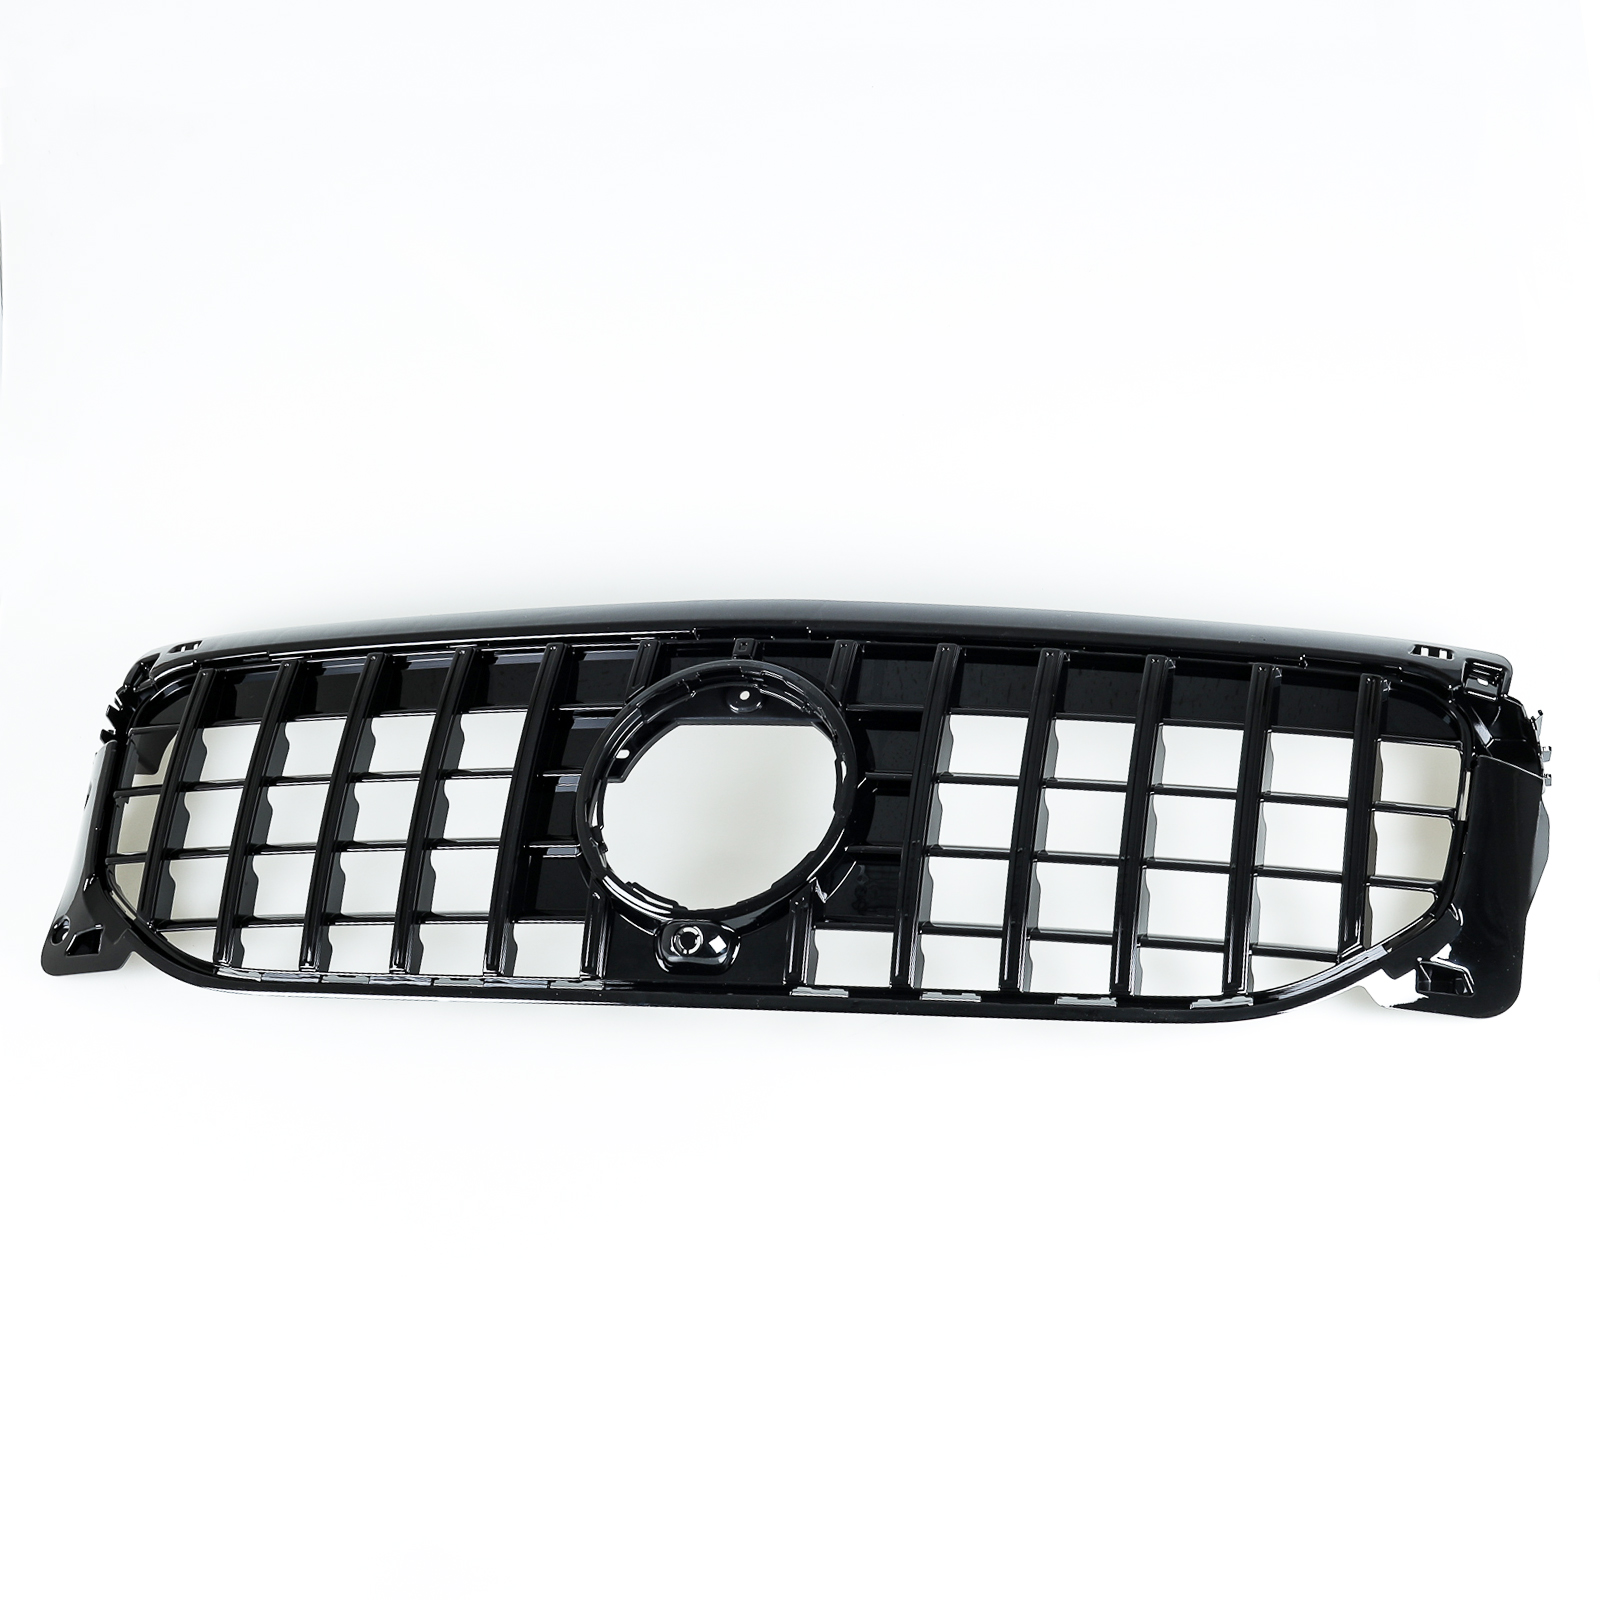 Black GT Style Front Grille For Mercedes Benz GLB-Class